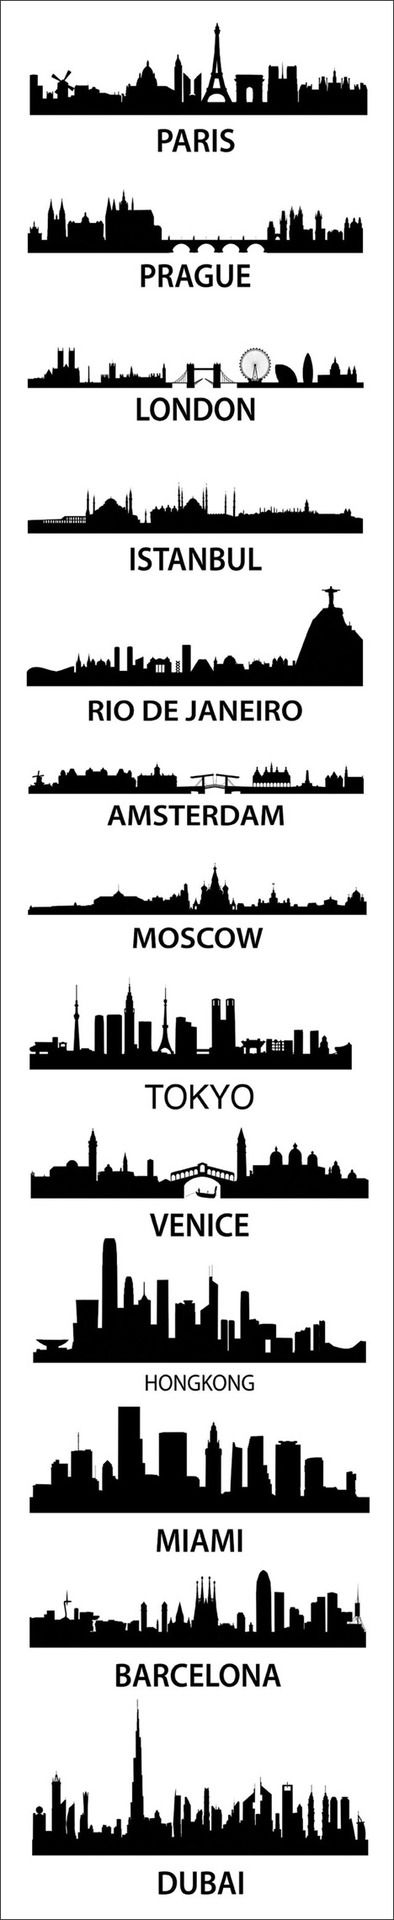 cities of the world: must see them all